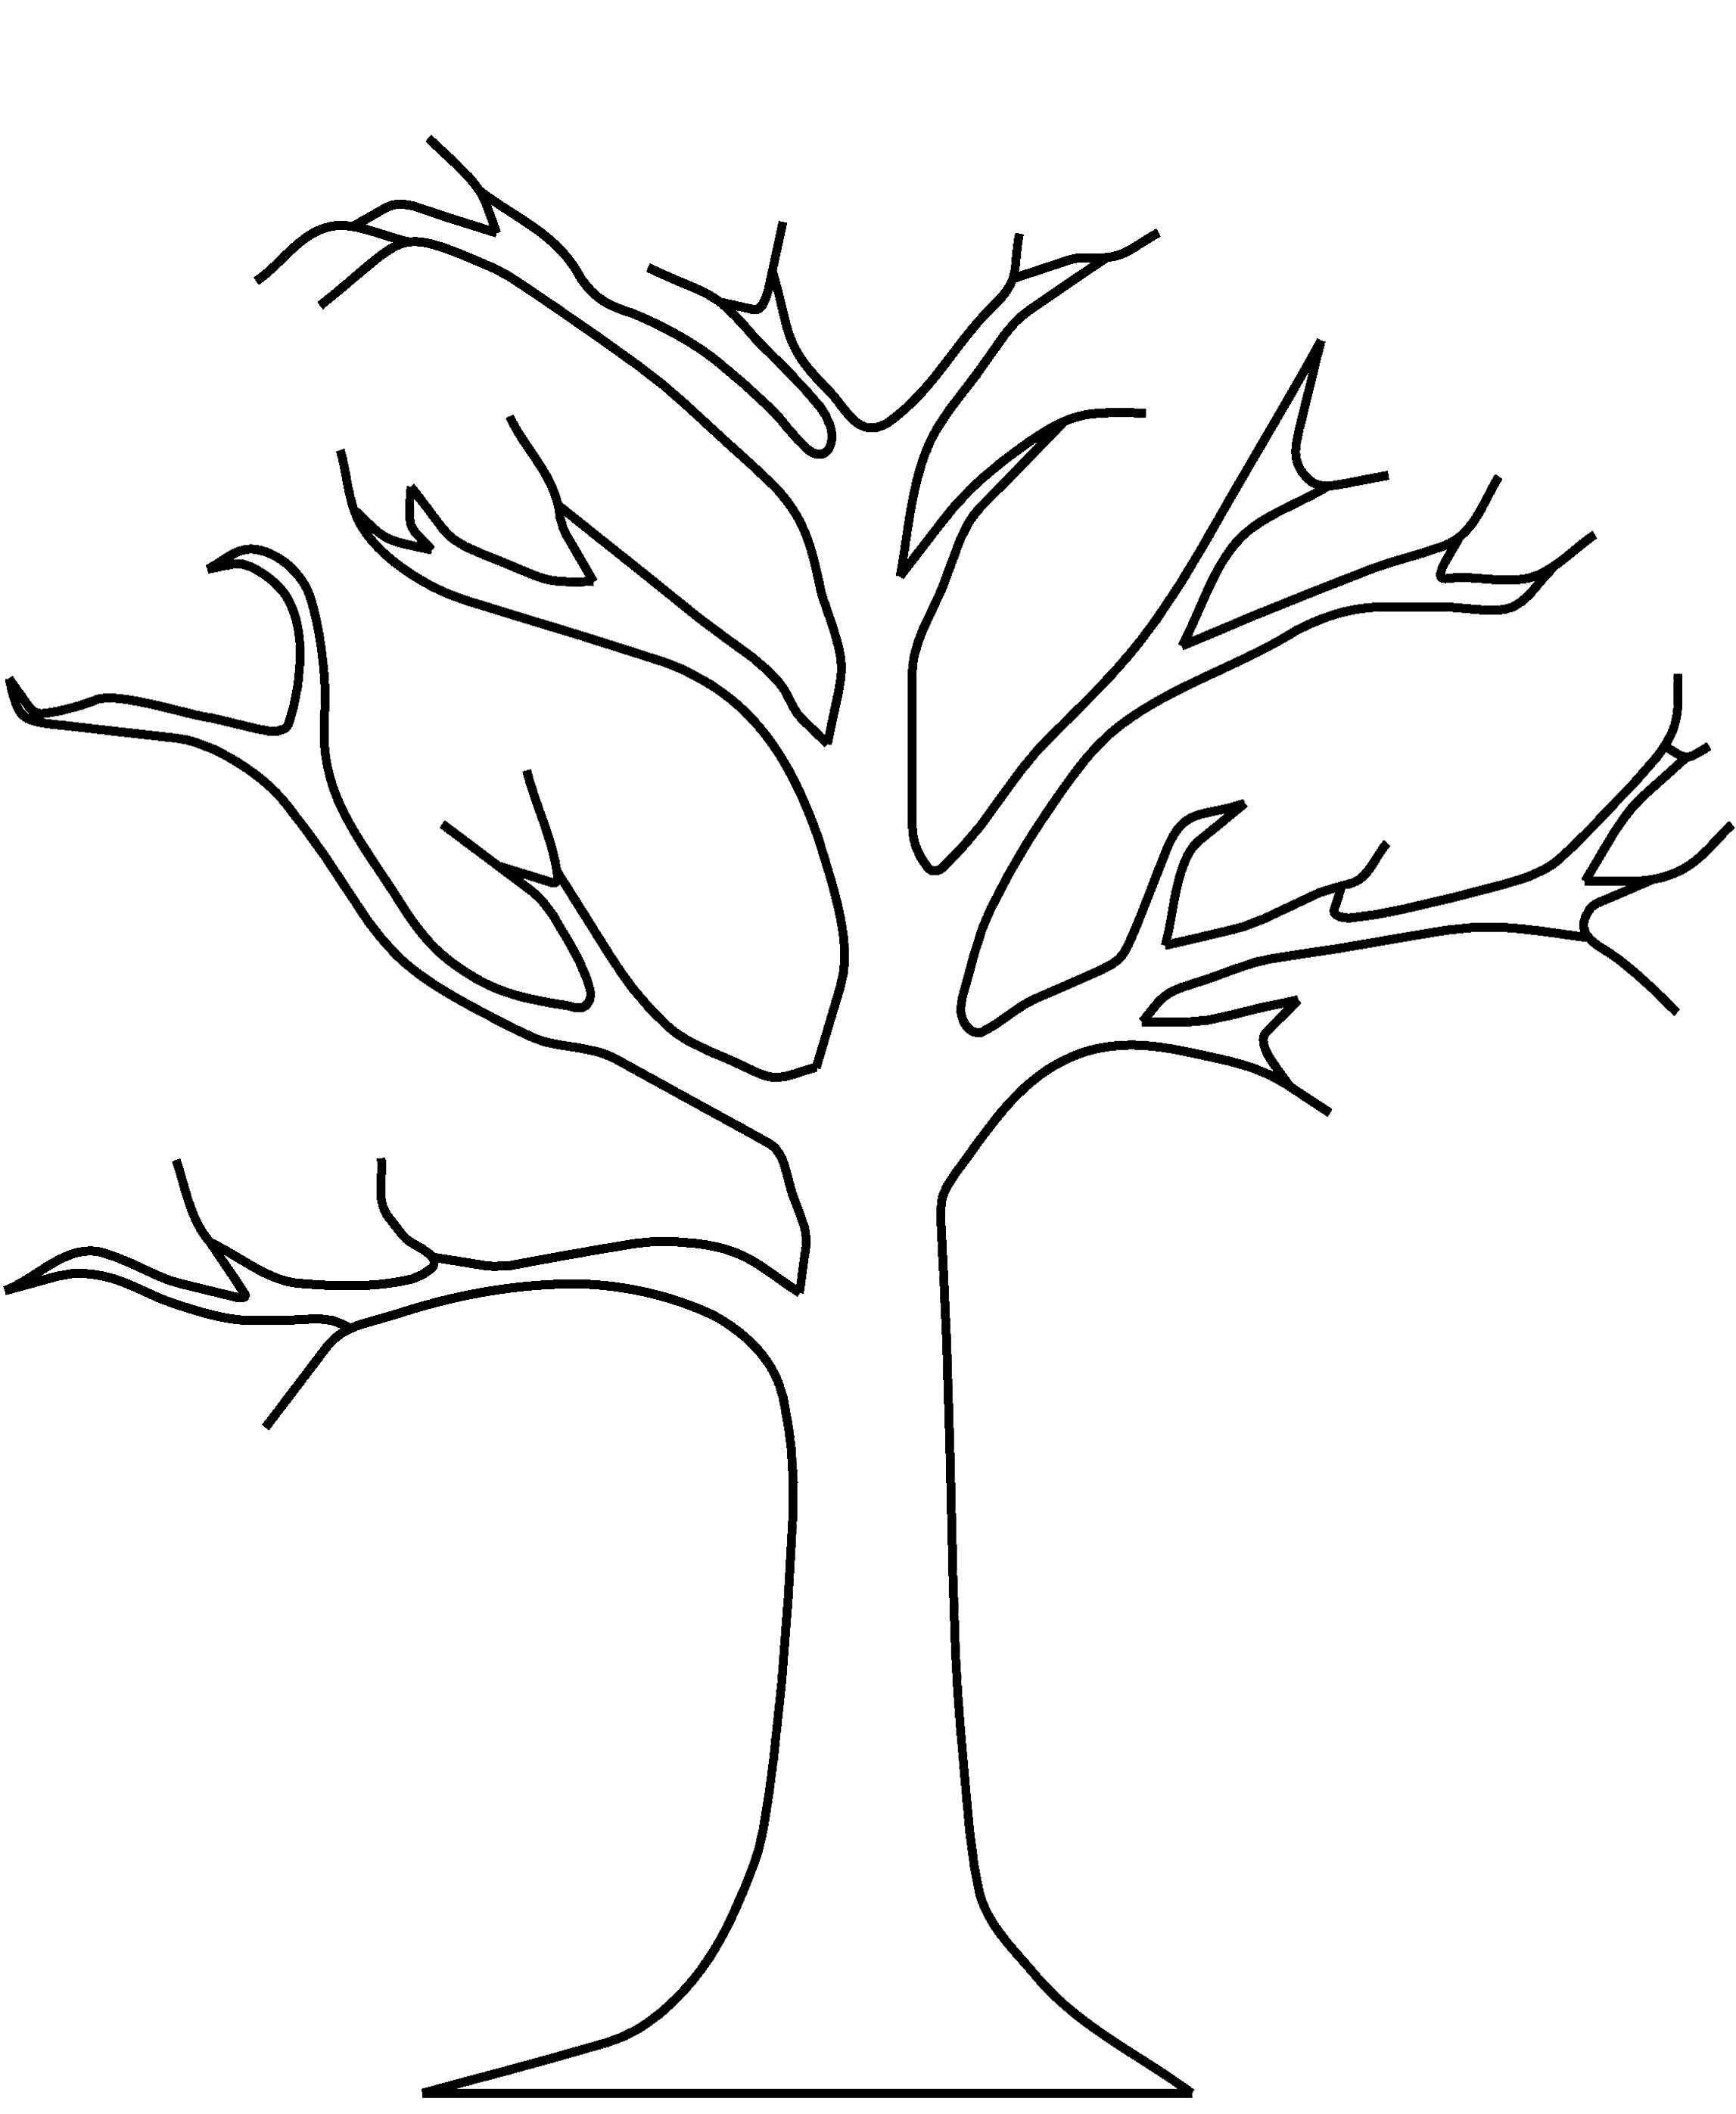 Tree with no leaves clipart black and white clip art black and white stock Leaf black and white tree no leaves clipart black and white ... clip art black and white stock